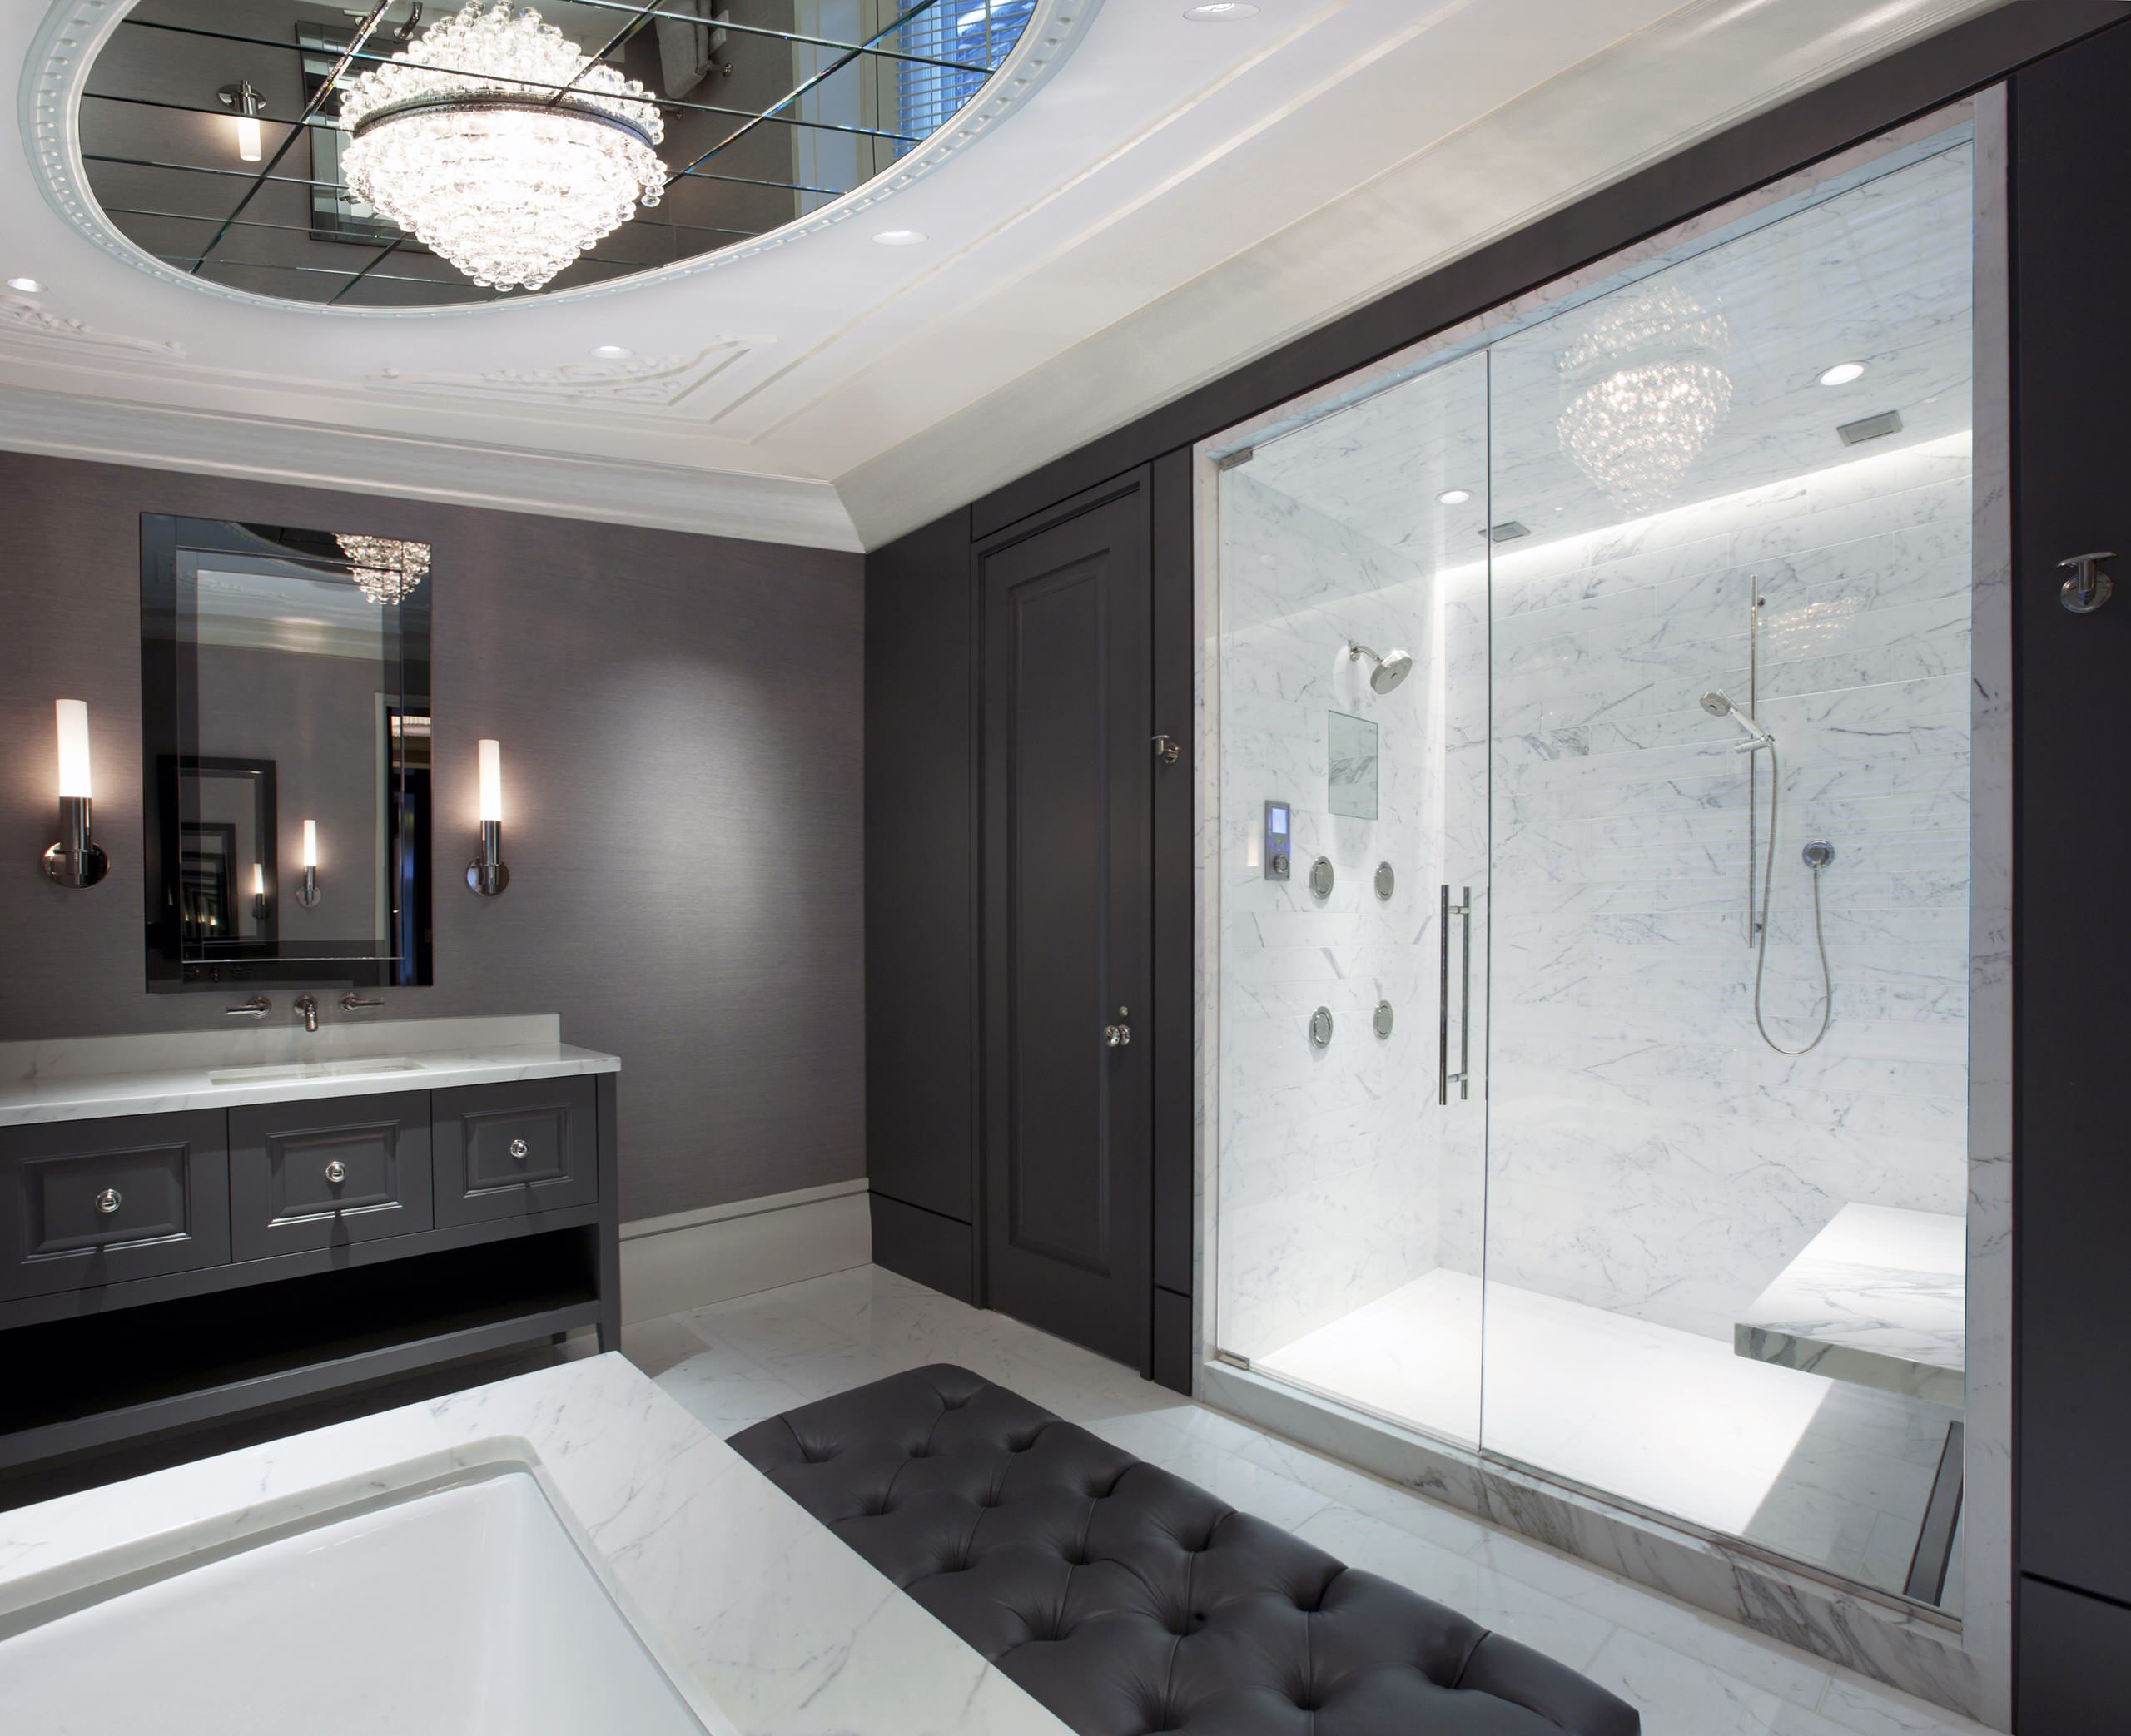 Architecture beveled mirror and modern ceiling light with mirror beveled mirror and modern ceiling light with mirror ceiling plus custom cabinet and floating bench also glass shower enclosure with marble tile and marble dailygadgetfo Choice Image